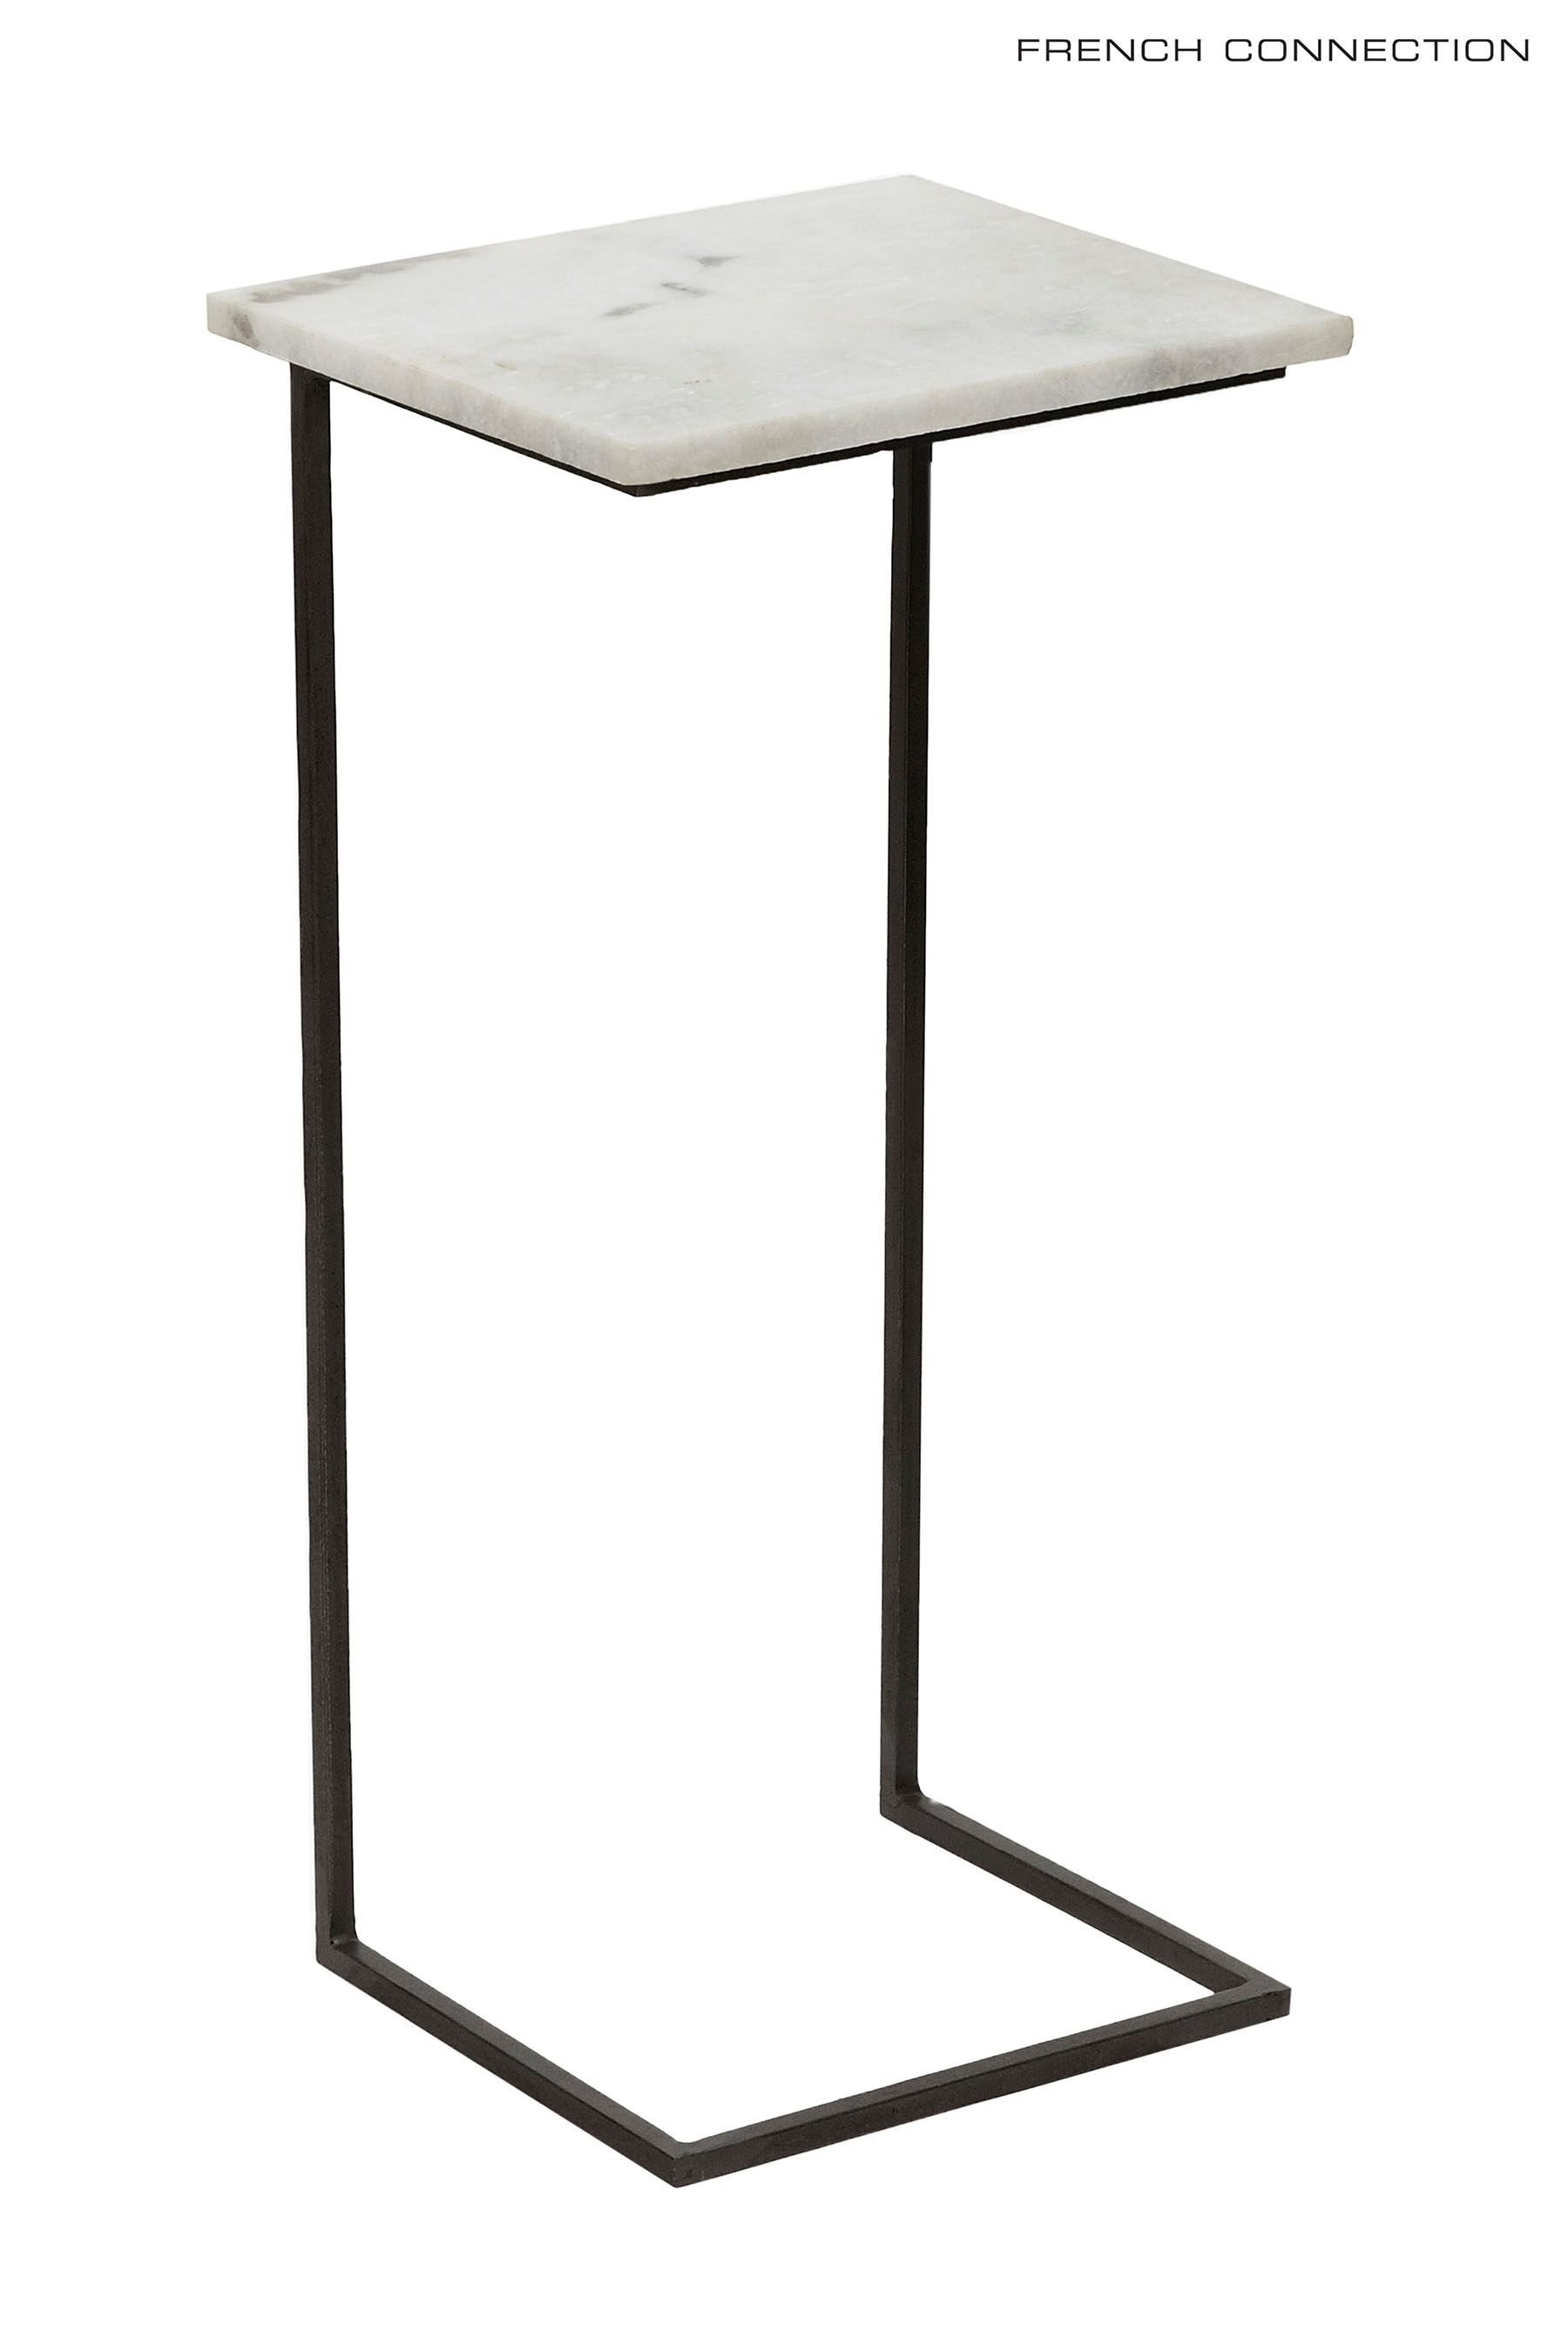 Buy French Connection Marble Laptop Or Side Table From The Next Uk